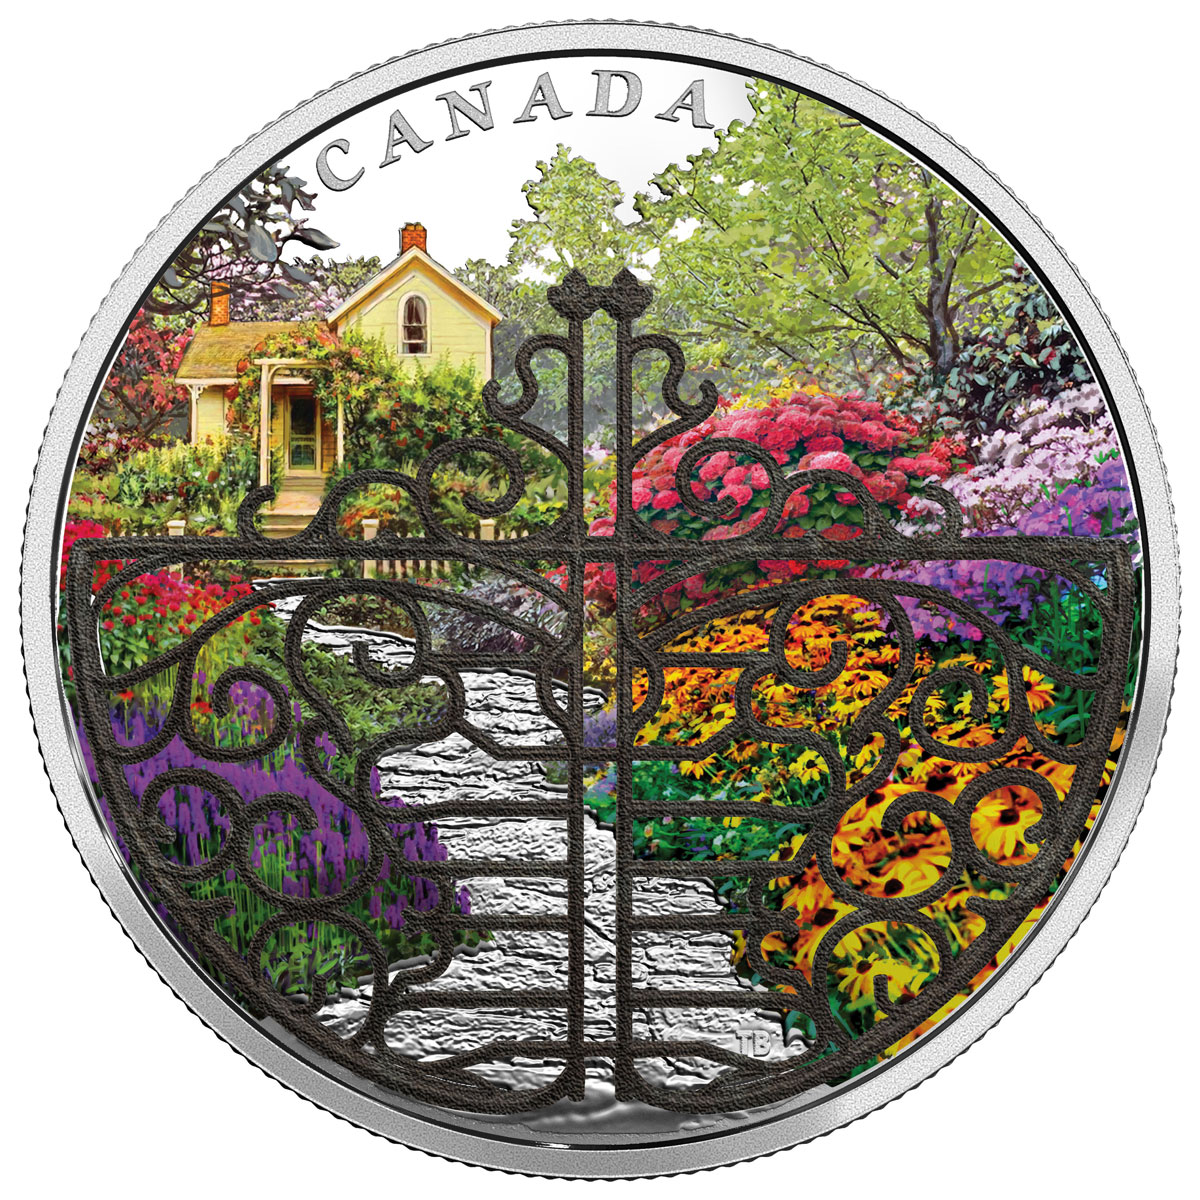 2017 Canada Gate to the Enchanted Garden 2 oz Silver Proof $30 Coin With White Bronze Filigree Gate GEM Proof OGP